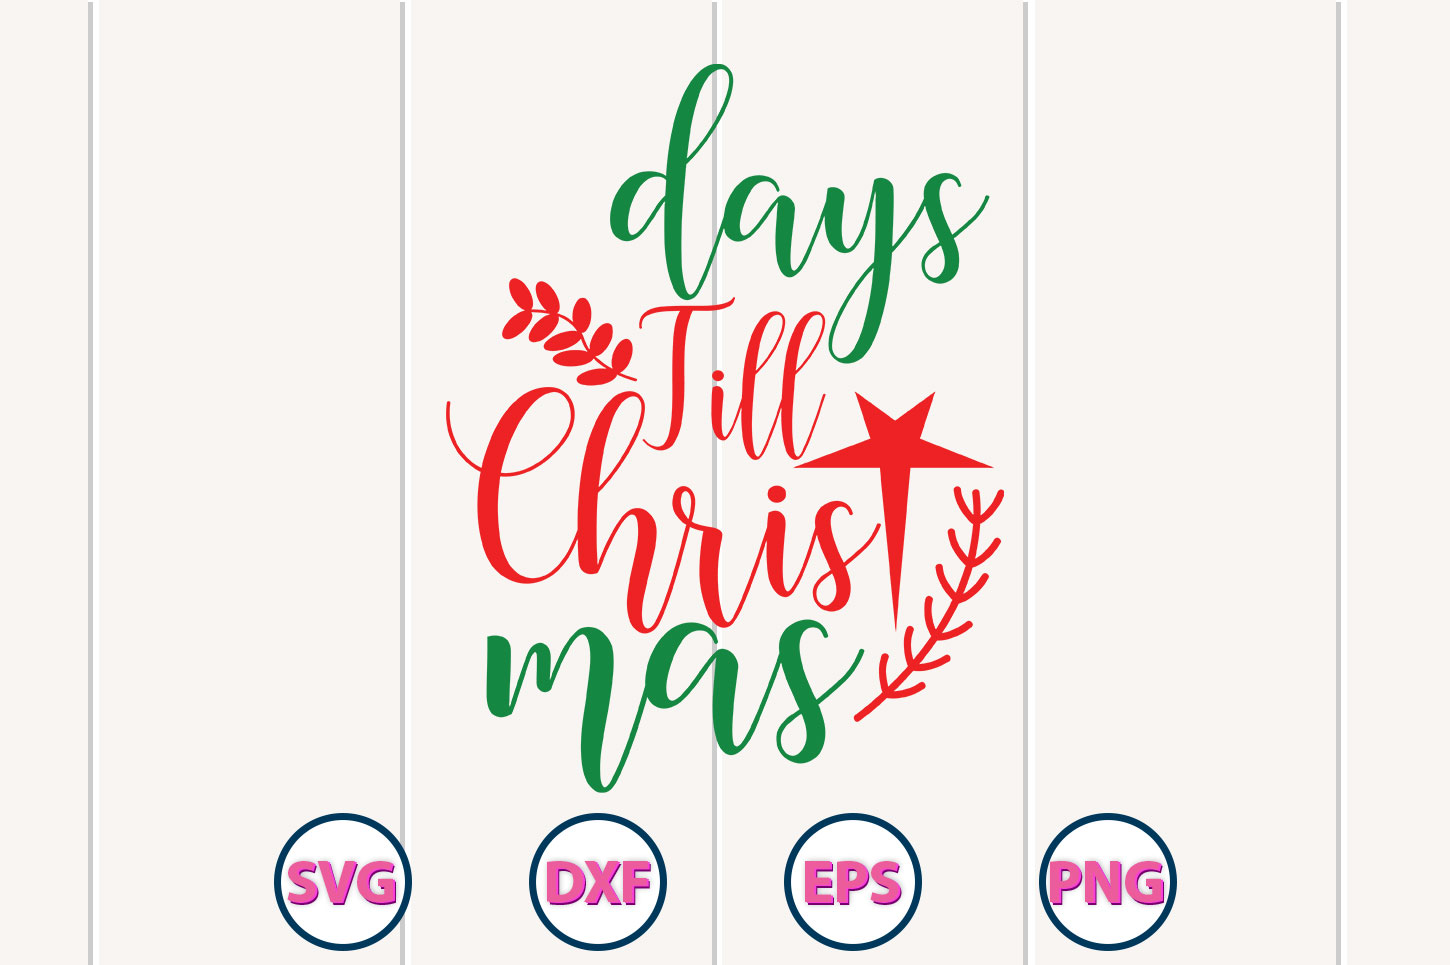 Download Free Days Till Christmas Graphic By Graphiccycle Creative Fabrica for Cricut Explore, Silhouette and other cutting machines.